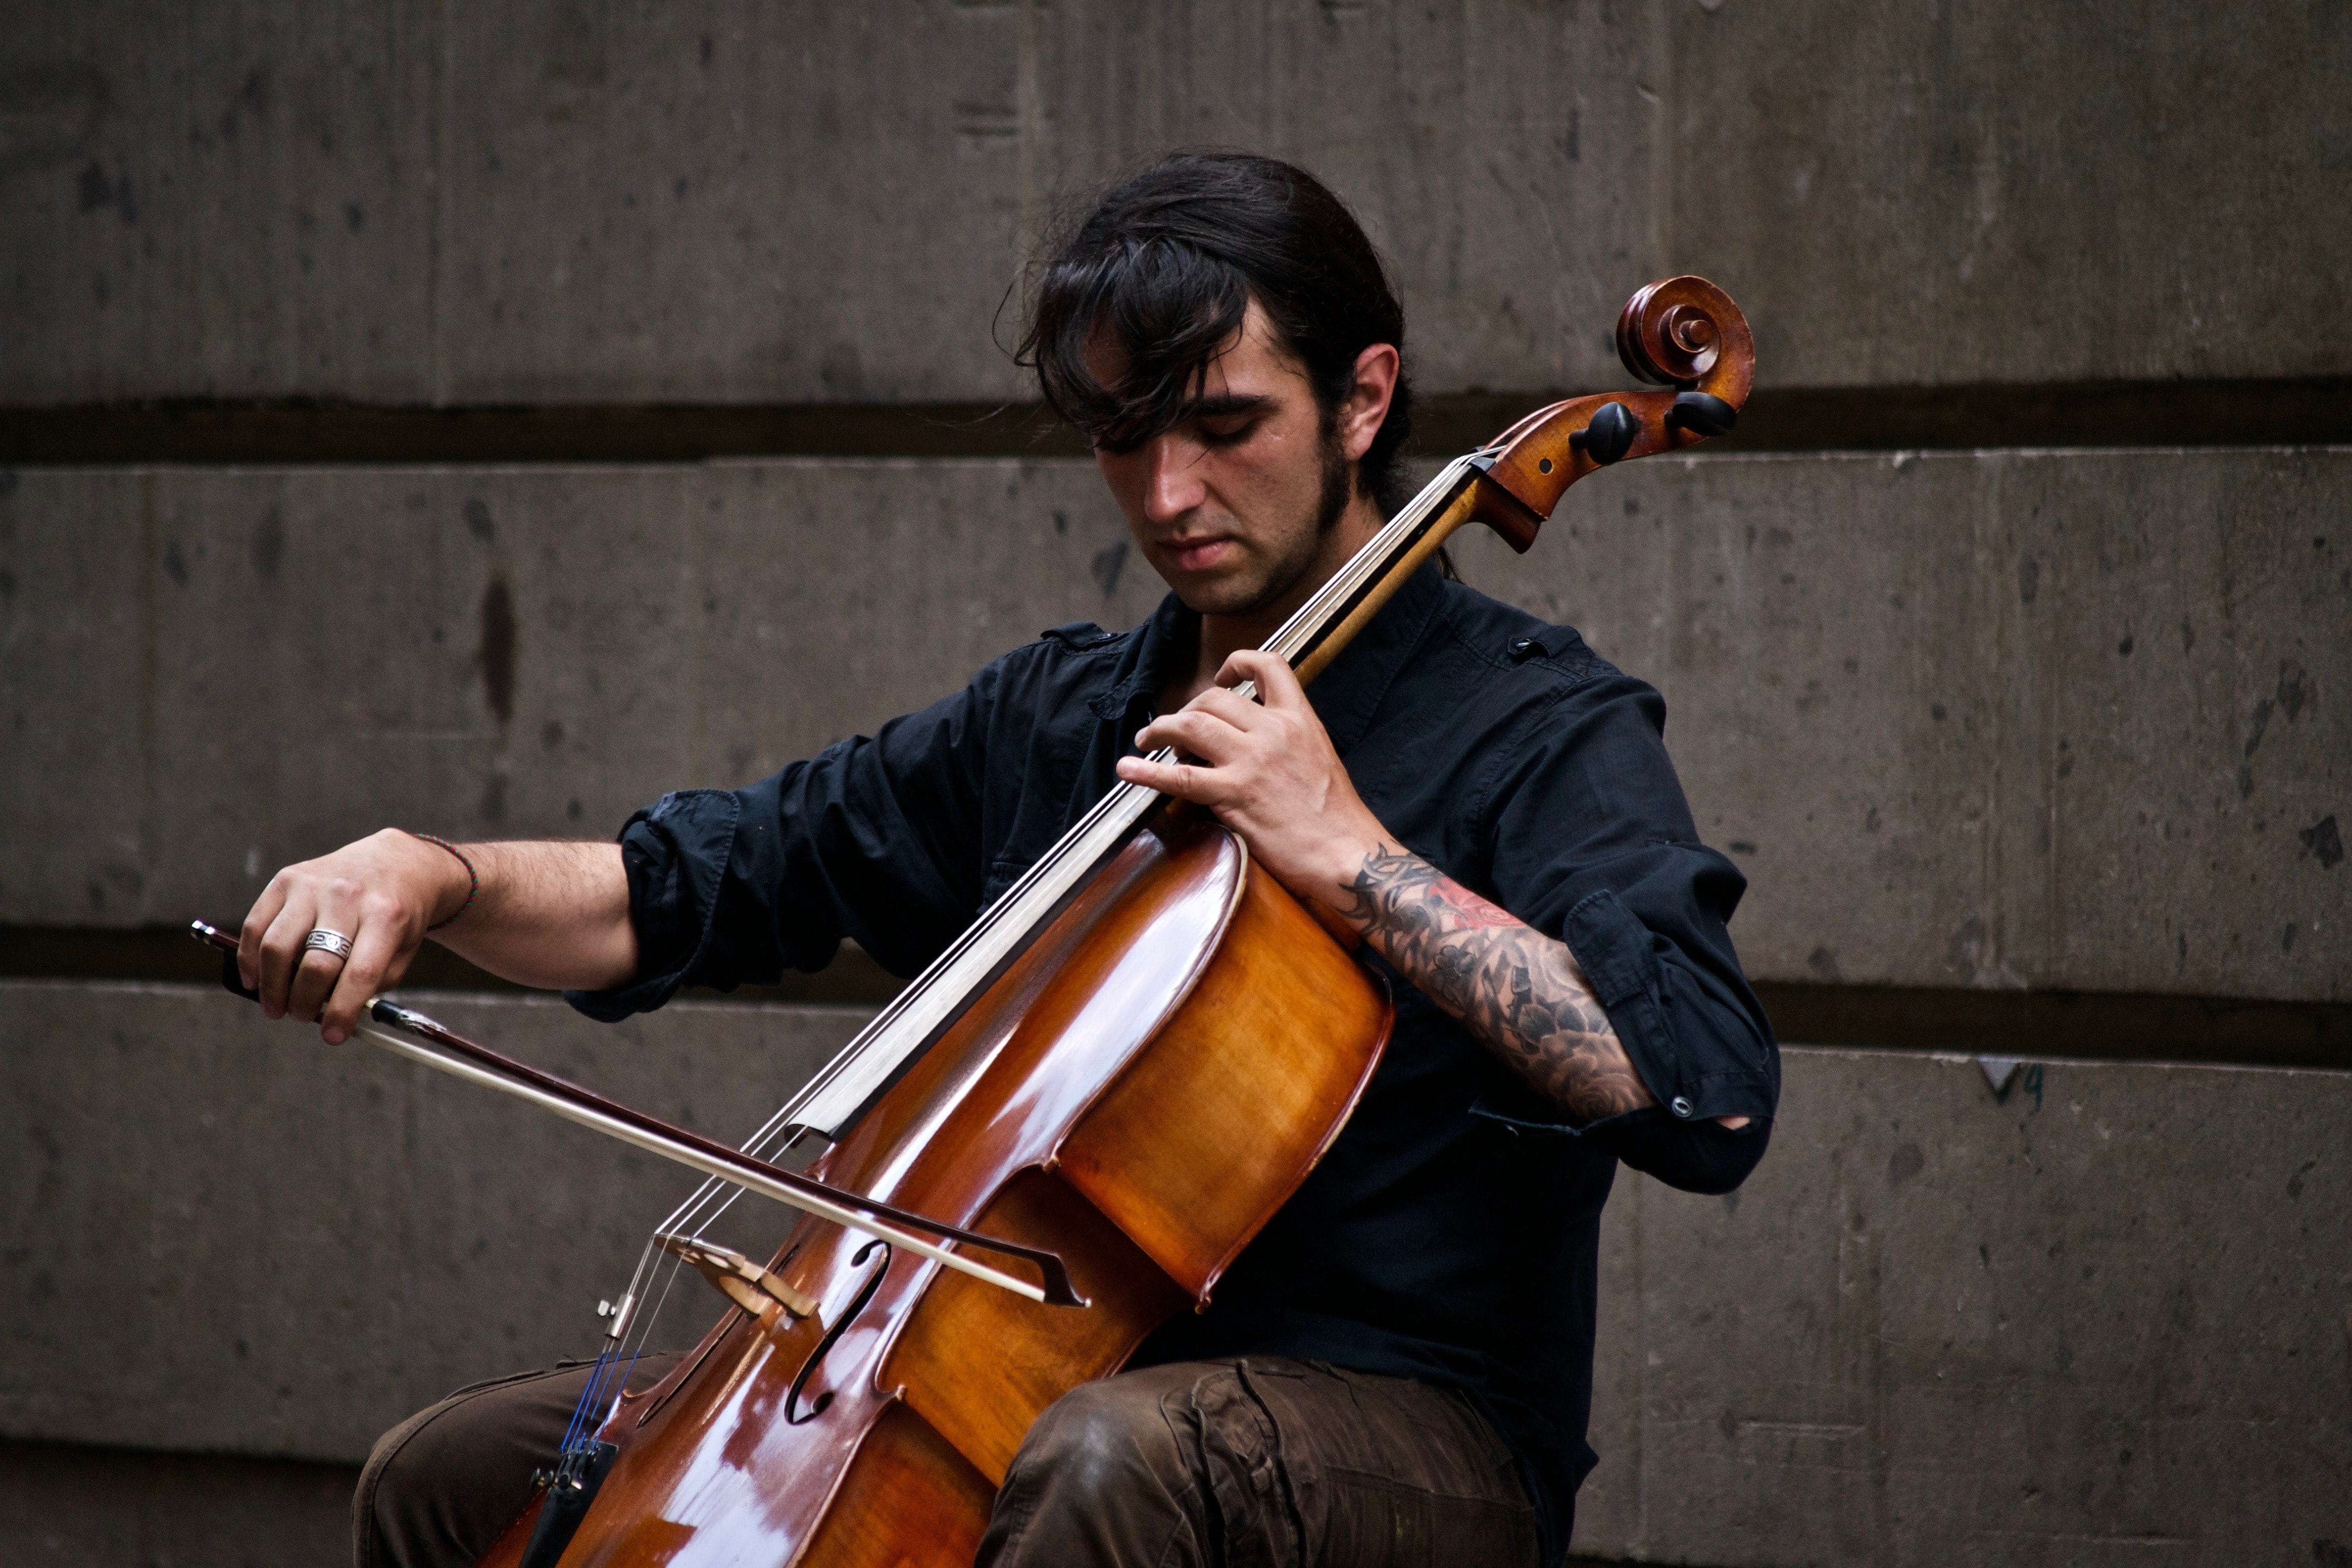 A man with a tattoo playing a cello in front of a wall